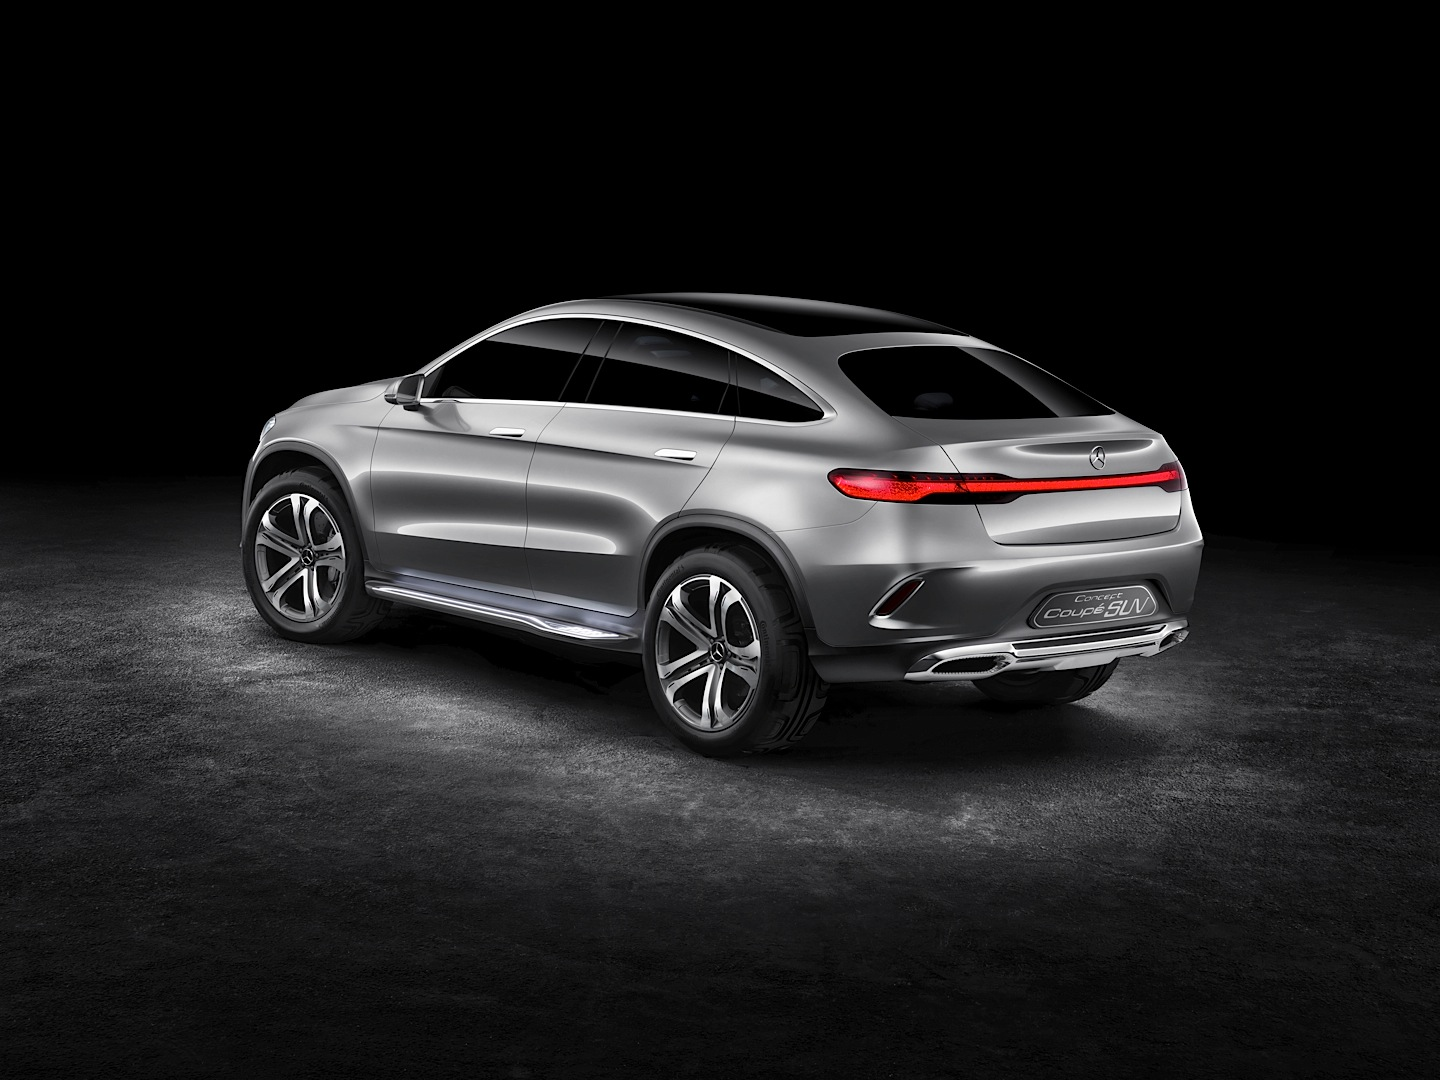 Used 2016 Nissan Maxima >> Mercedes-Benz Concept Coupe SUV Officially Revealed - autoevolution